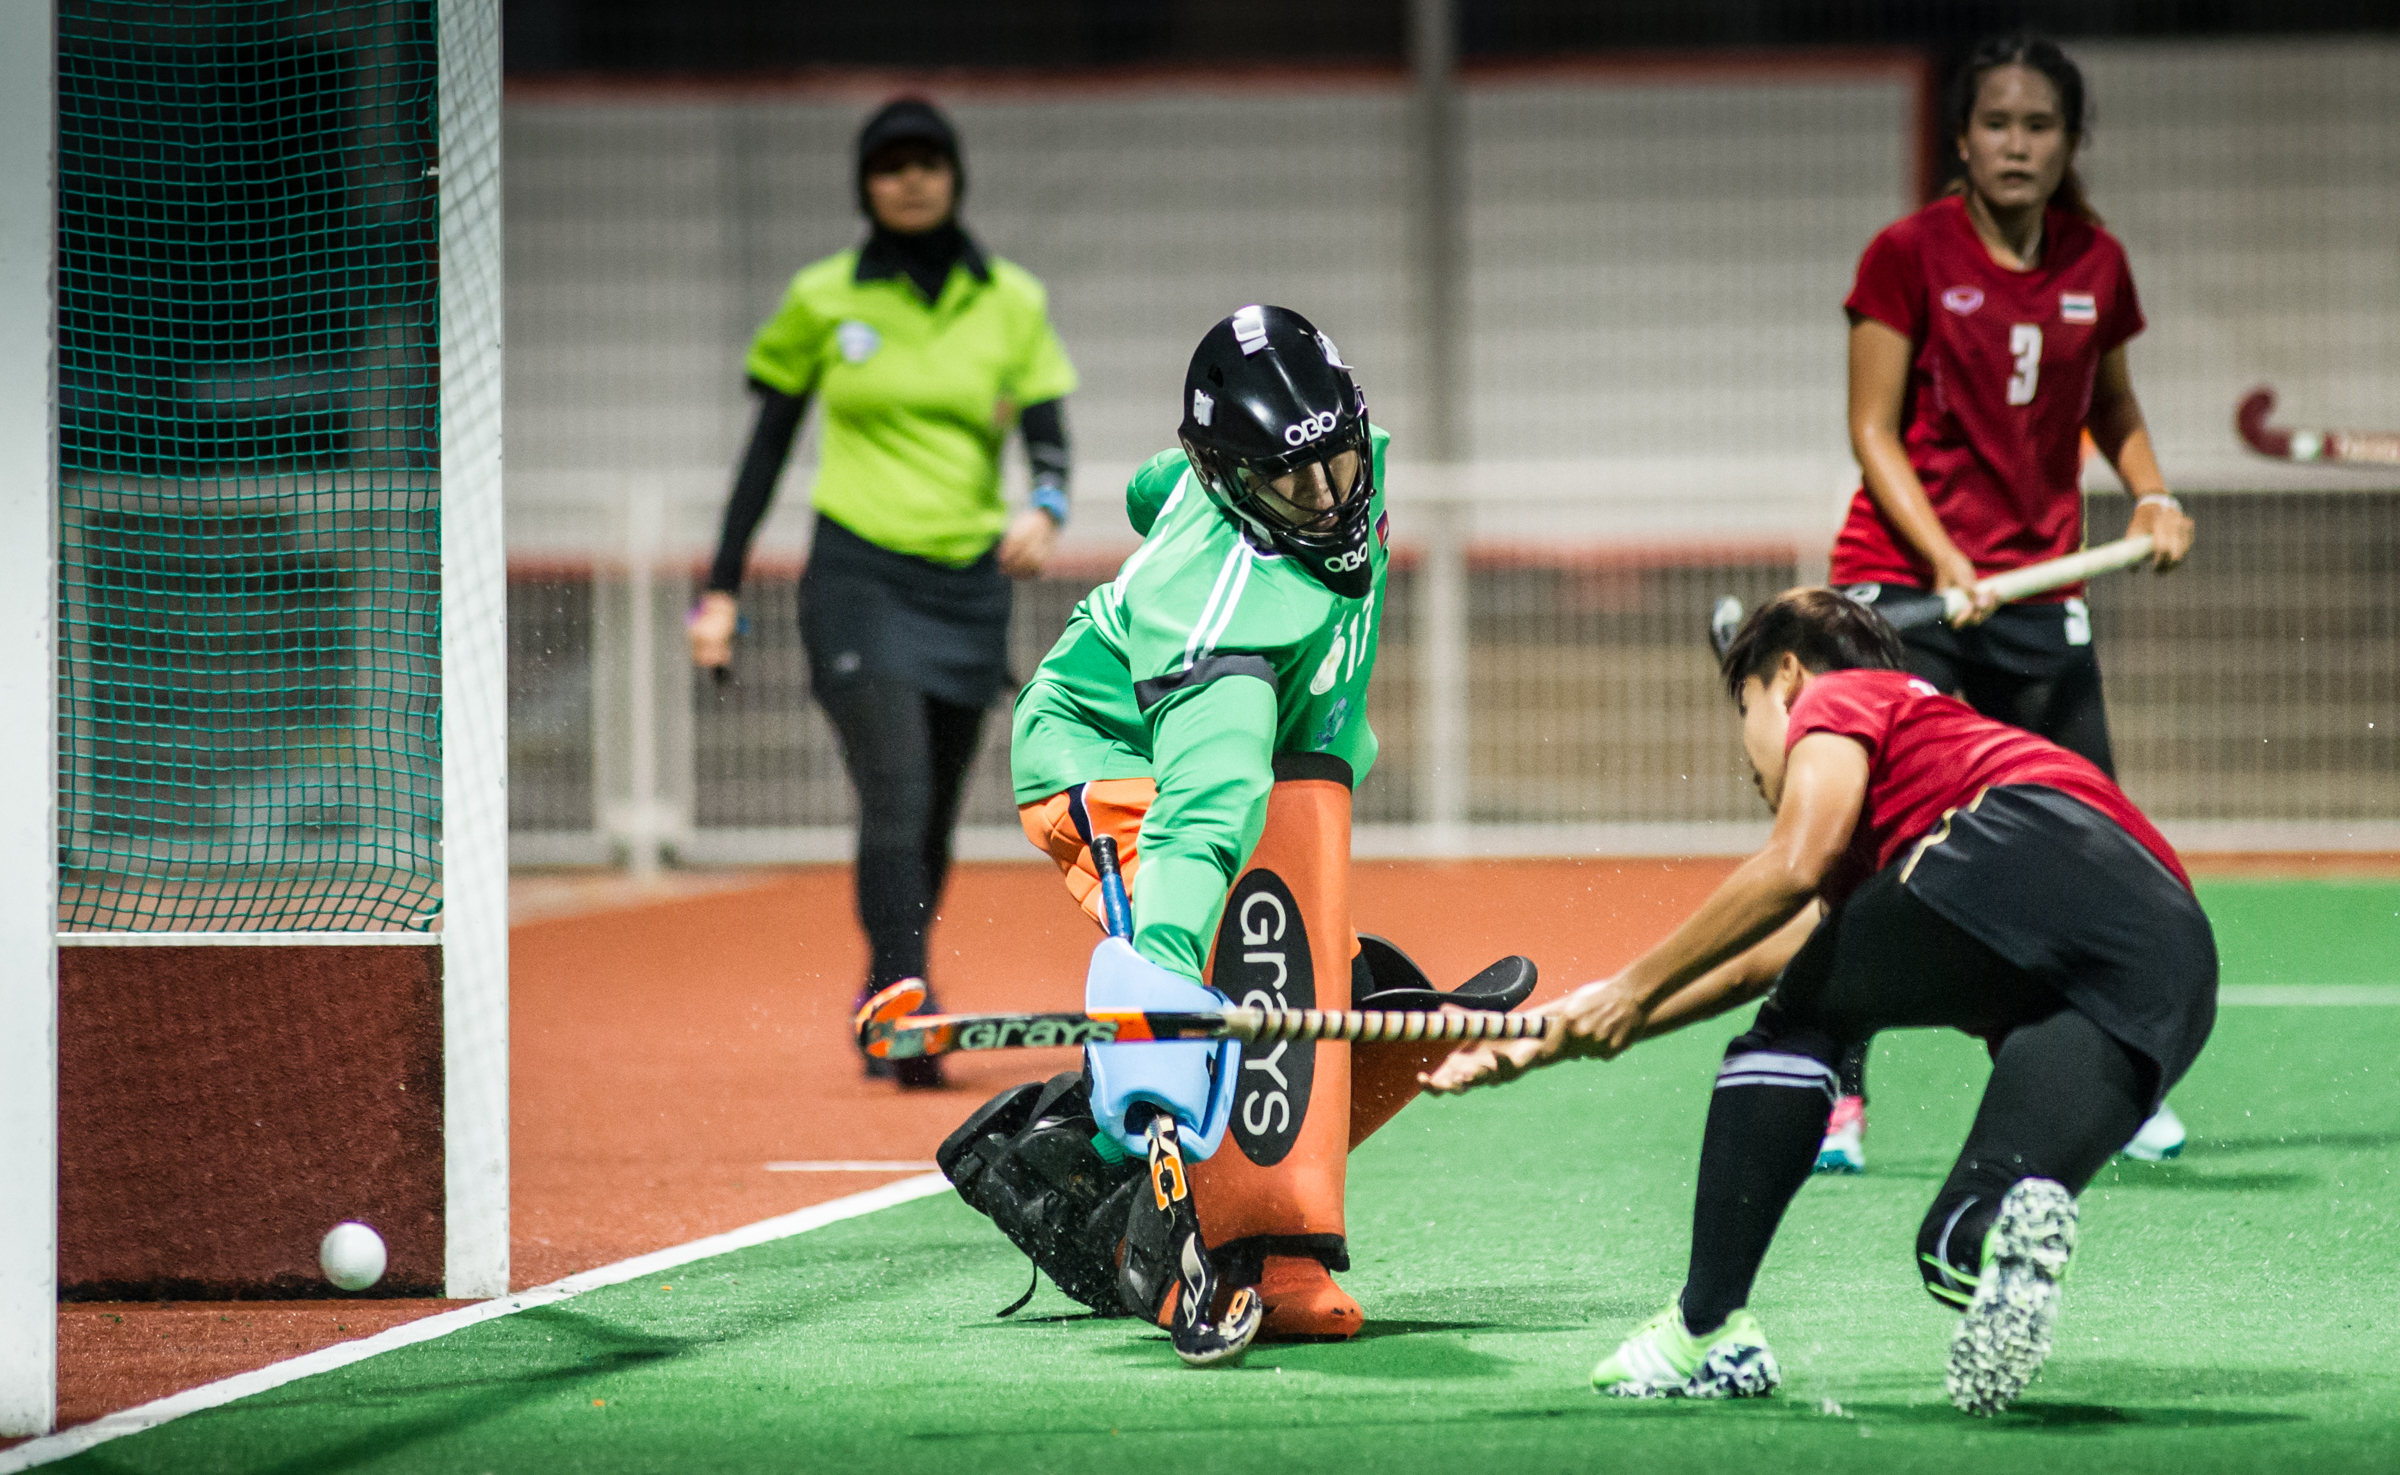 A Thai player shoots the ball past a Cambodian goal keeper during a World Hockey League match at the Sengkang Sports Complex.